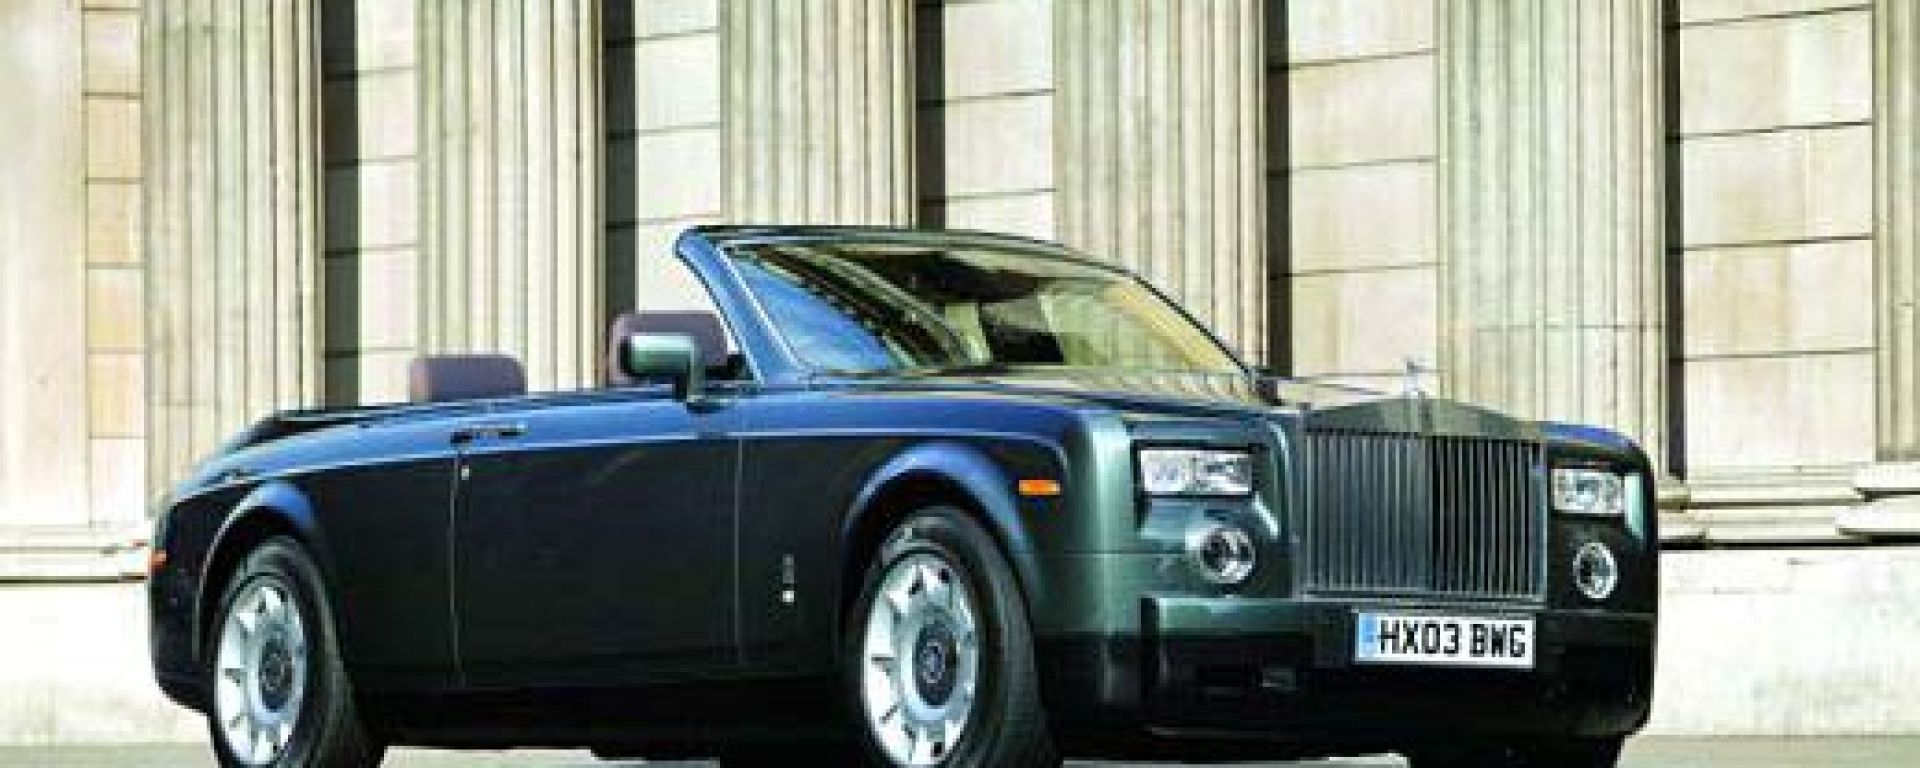 Rolls-Royce Phantom Cabrio e Coupé